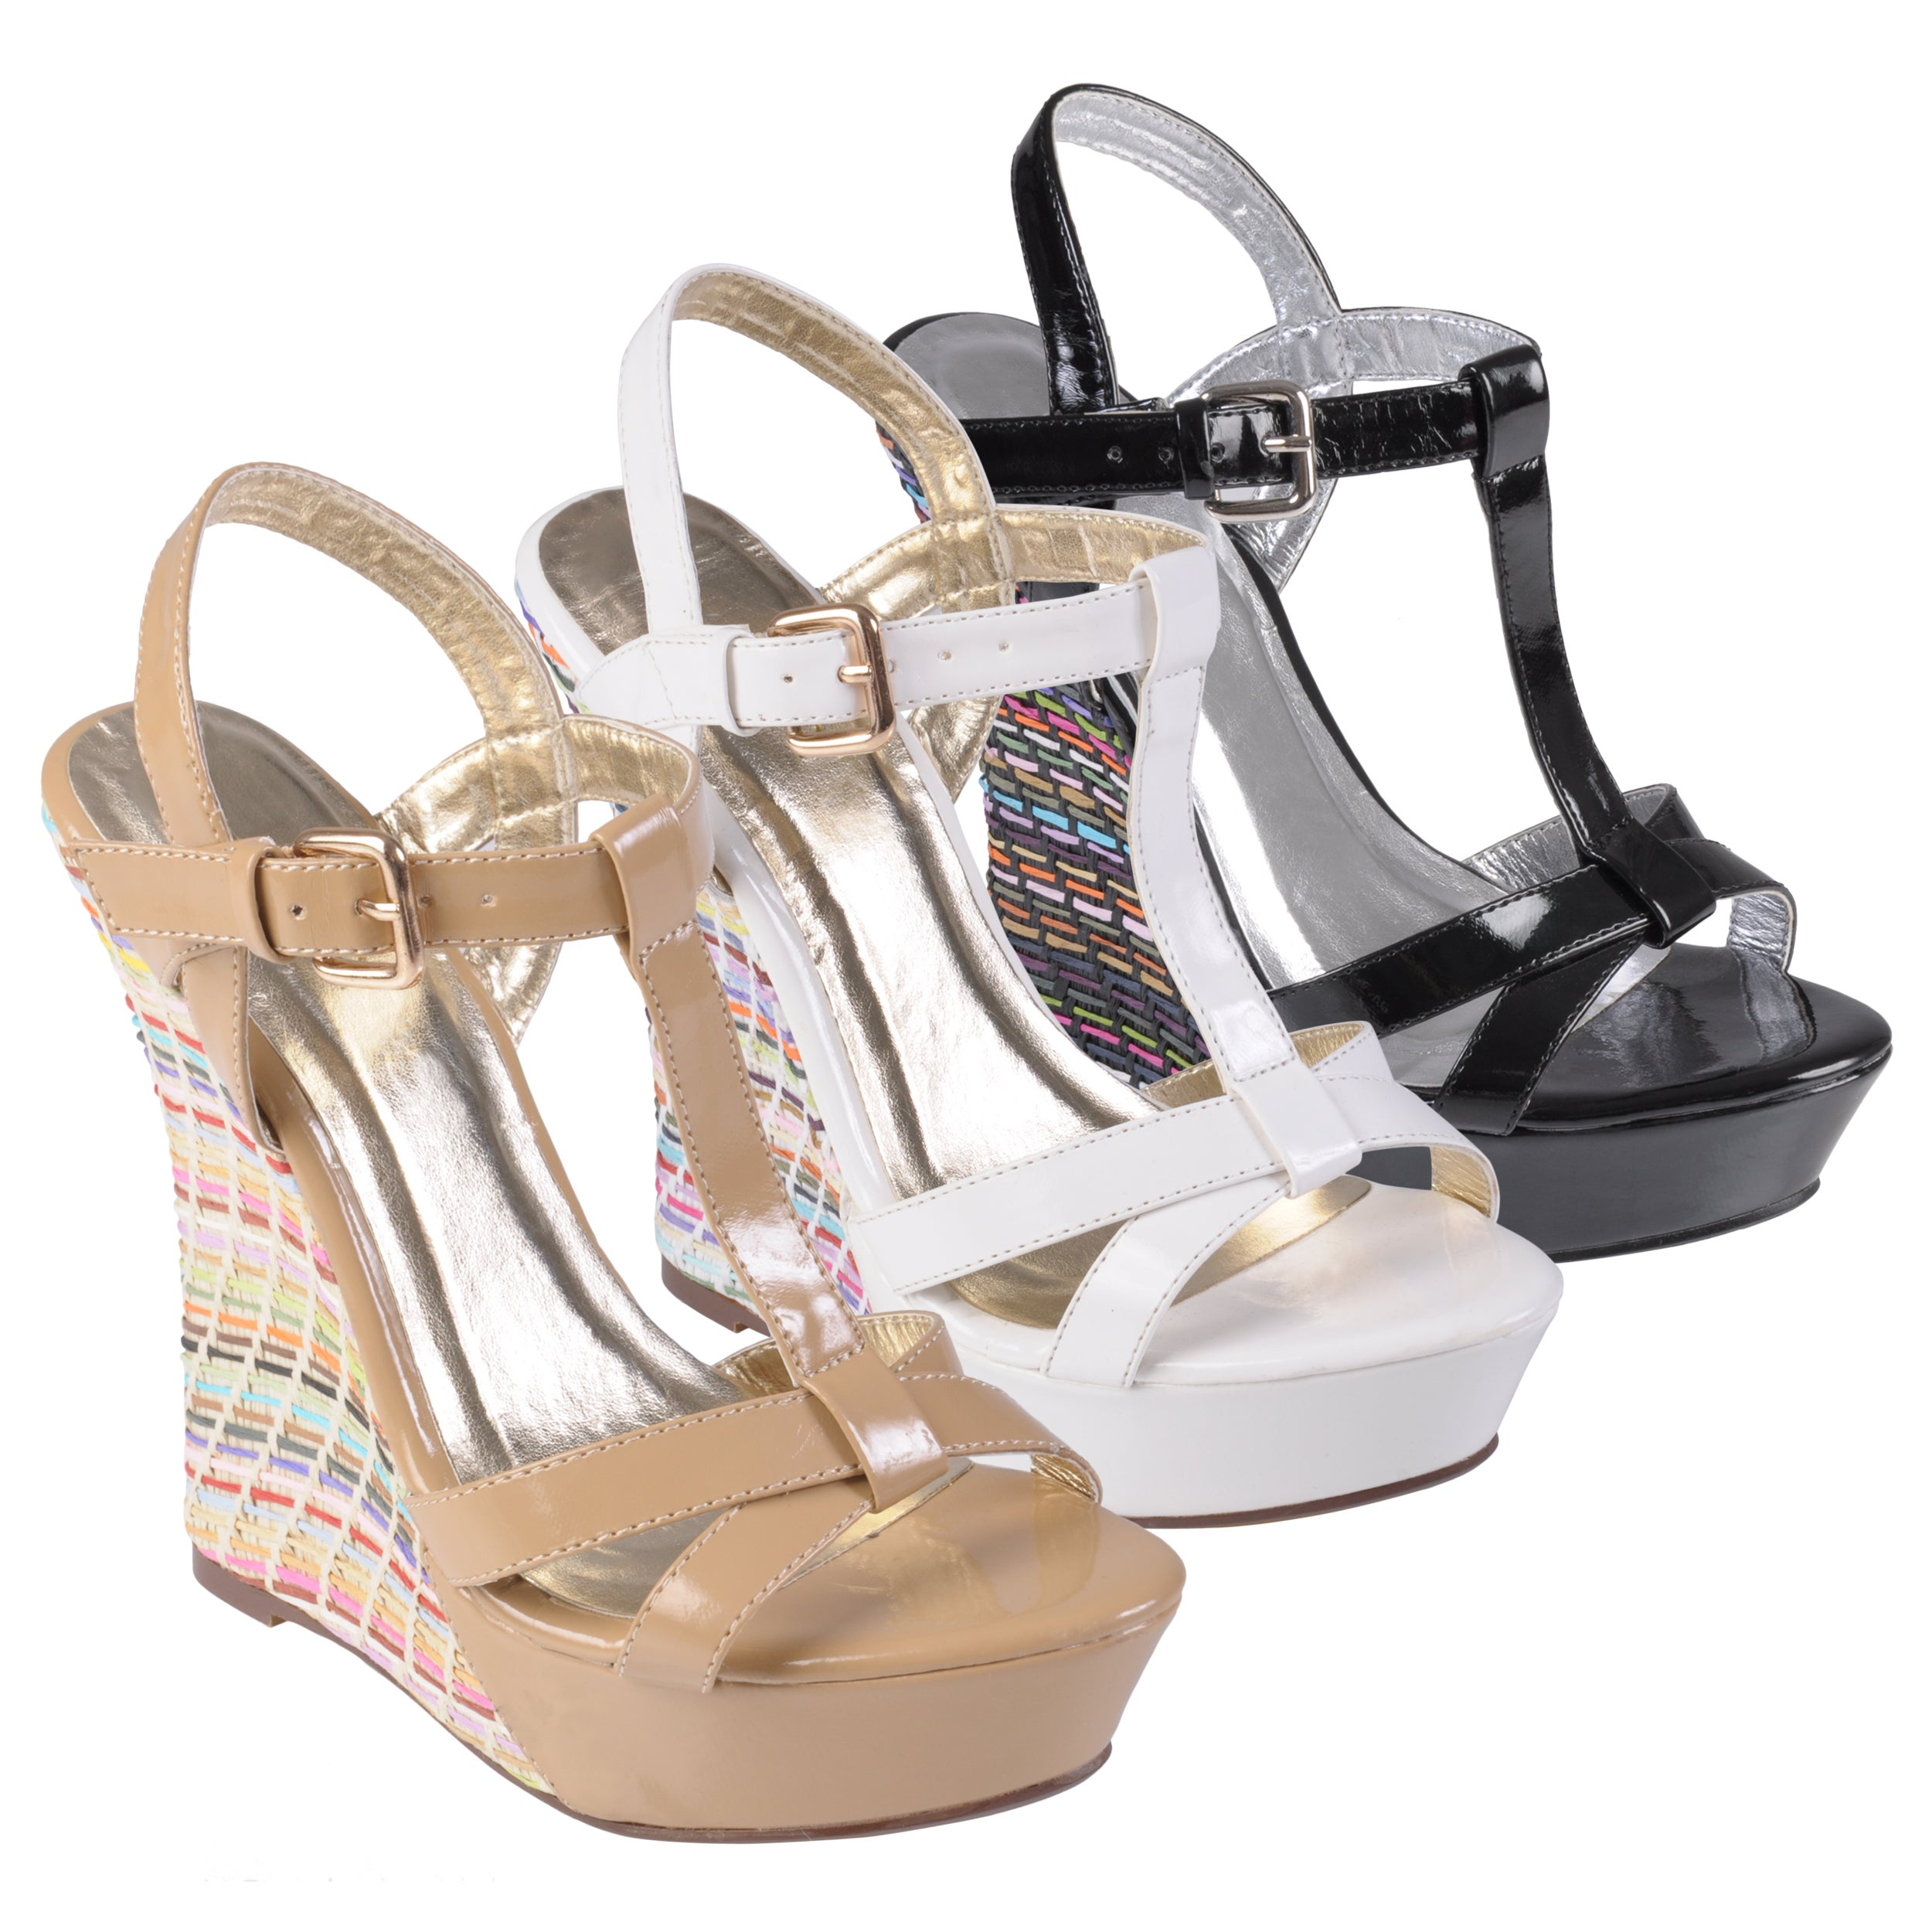 Journee Collection Womens 'Boston-7' Open Toe Ankle Strap Wedges